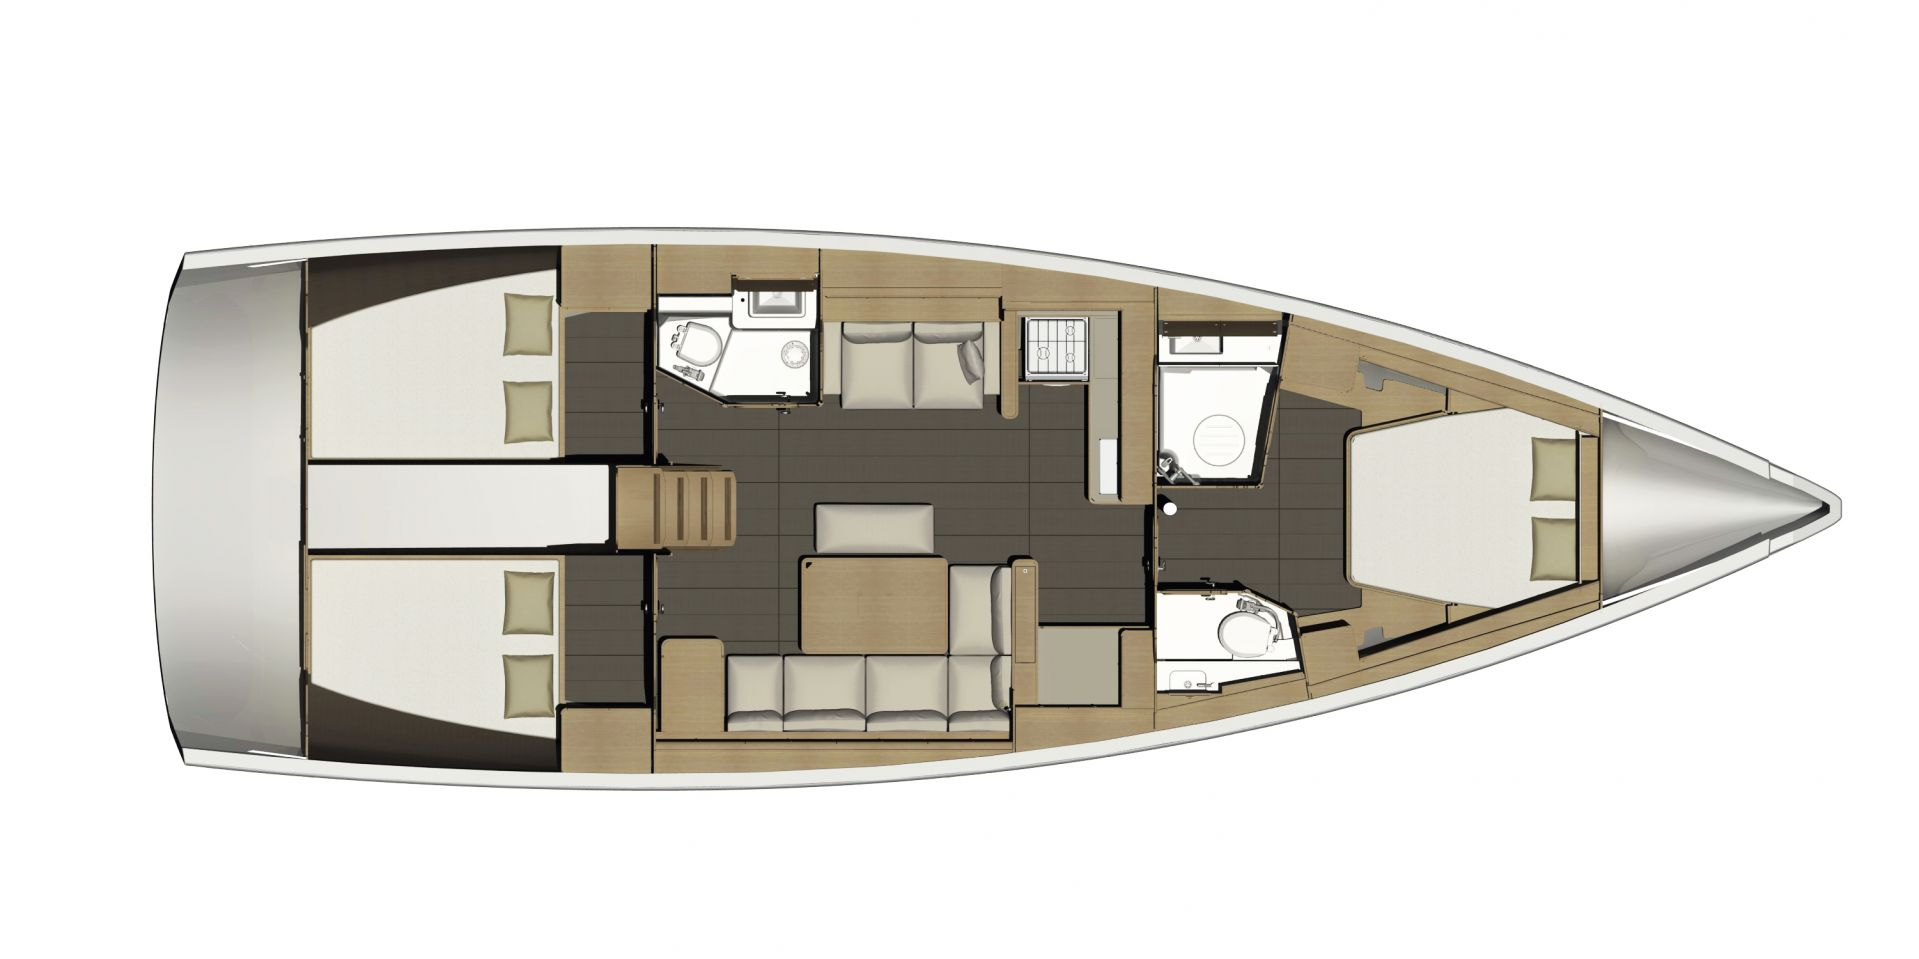 Dufour 46 GL layout